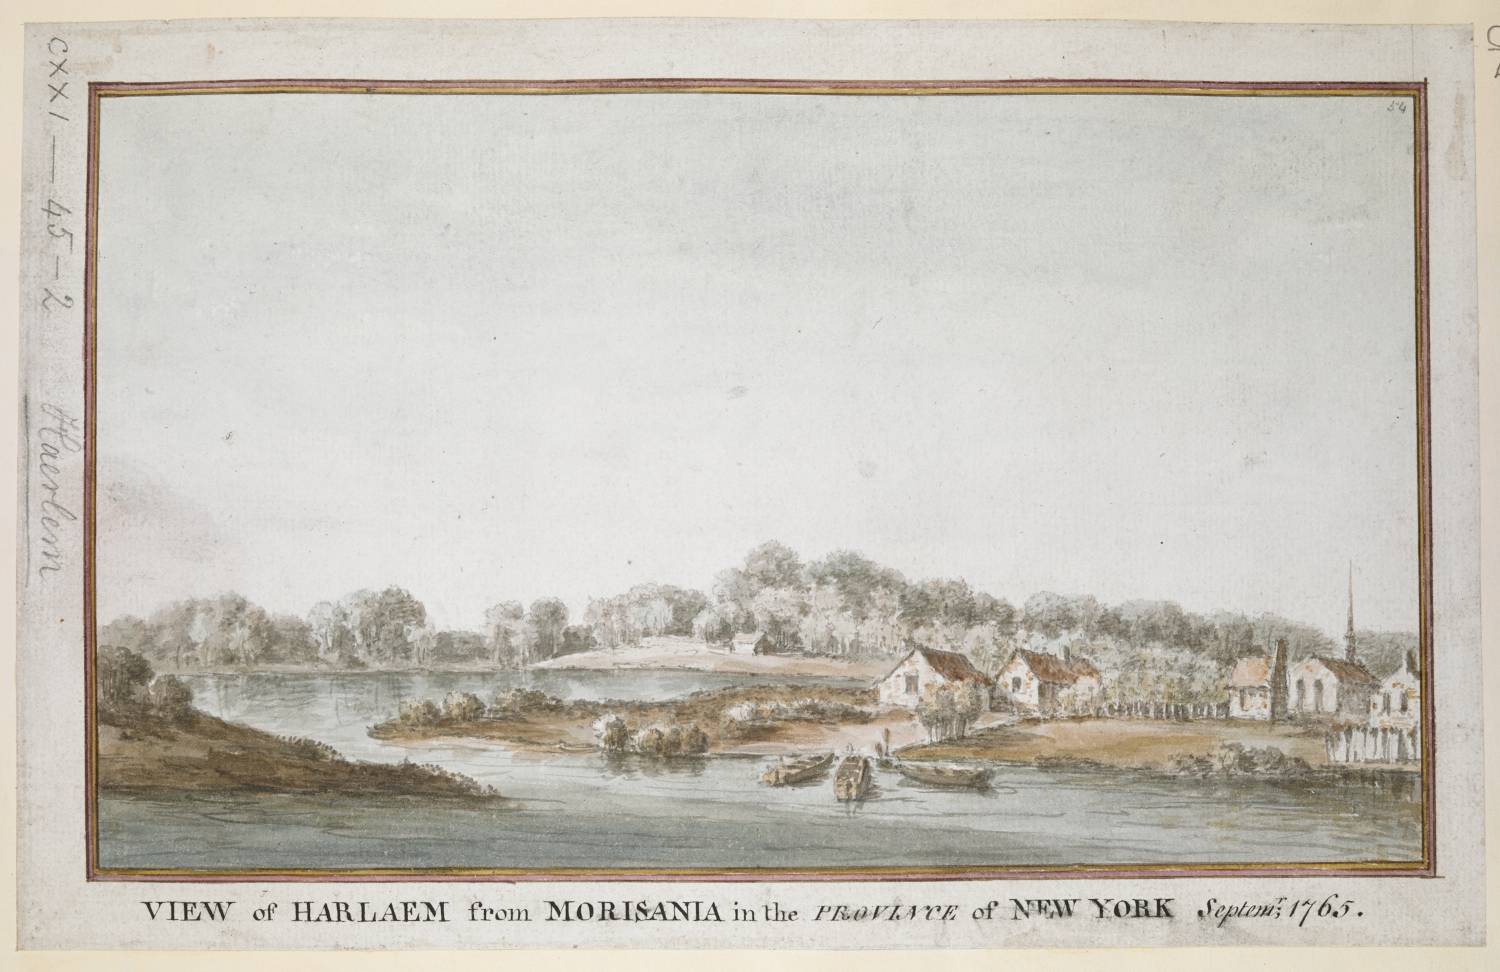 Lord Adam Gordon's View of Harlaem from Morisania in the Province of New York